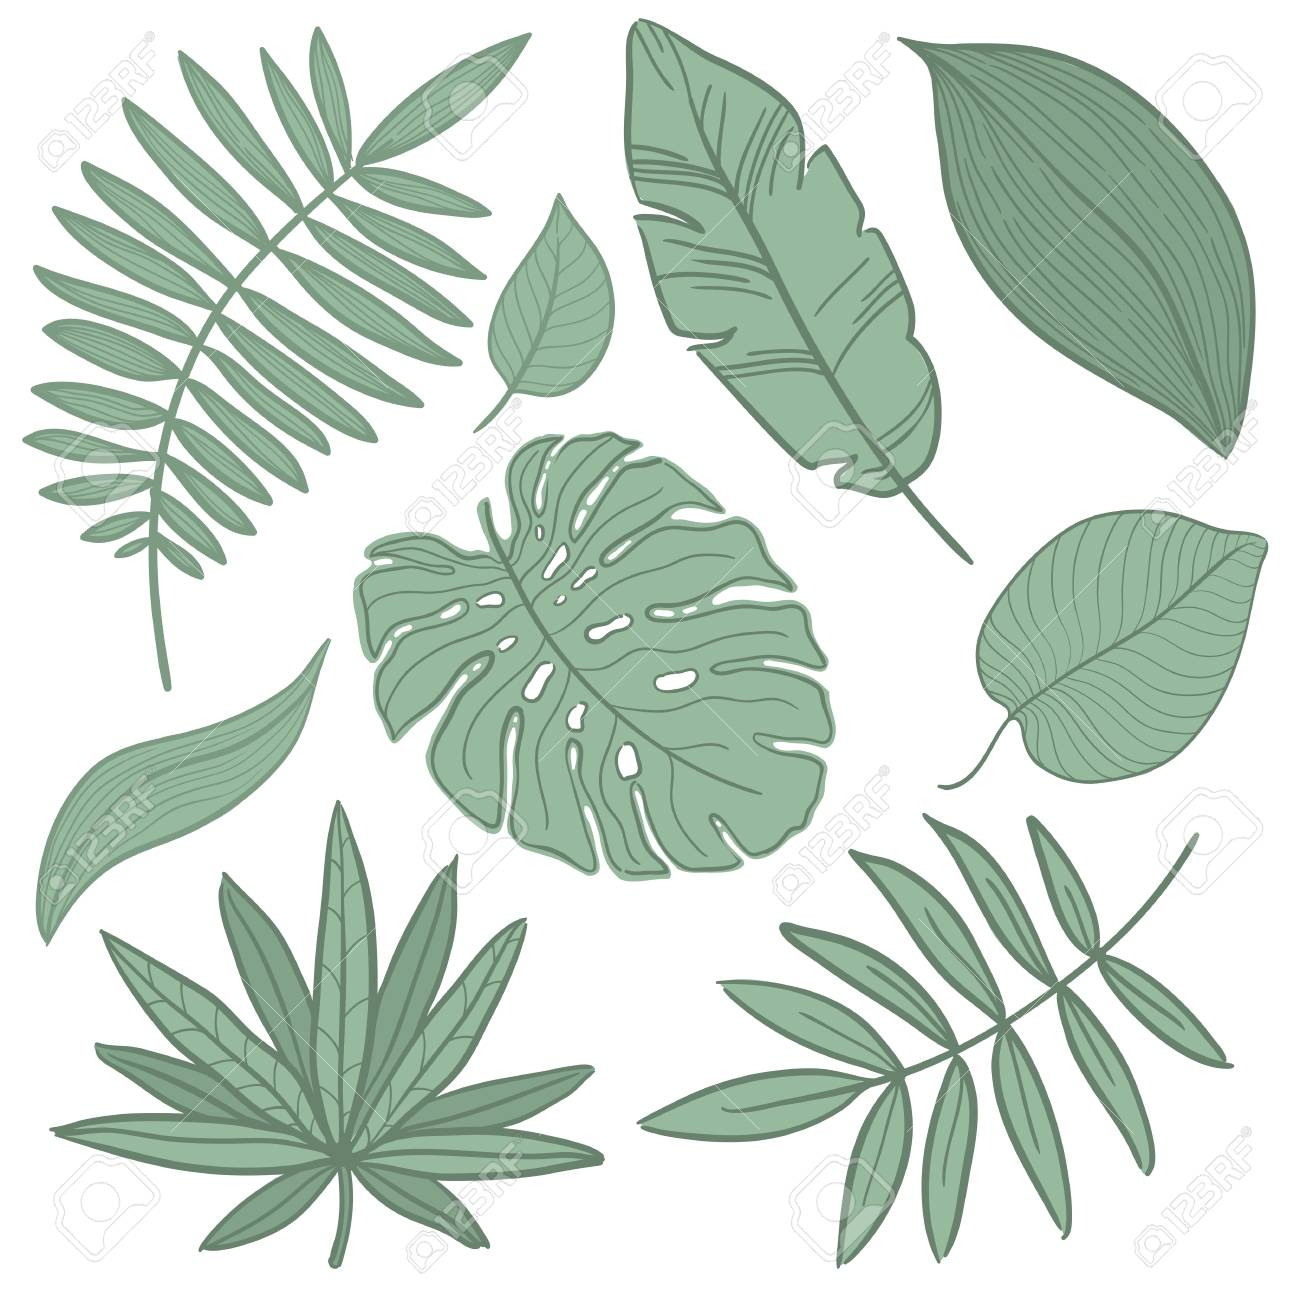 Vector Tropical Palm Leaves Jungle Split Leaf Philodendron Royalty Free Cliparts Vectors And Stock Illustration Image 95364706 The png format is also compatible with most design applications out there. vector tropical palm leaves jungle split leaf philodendron